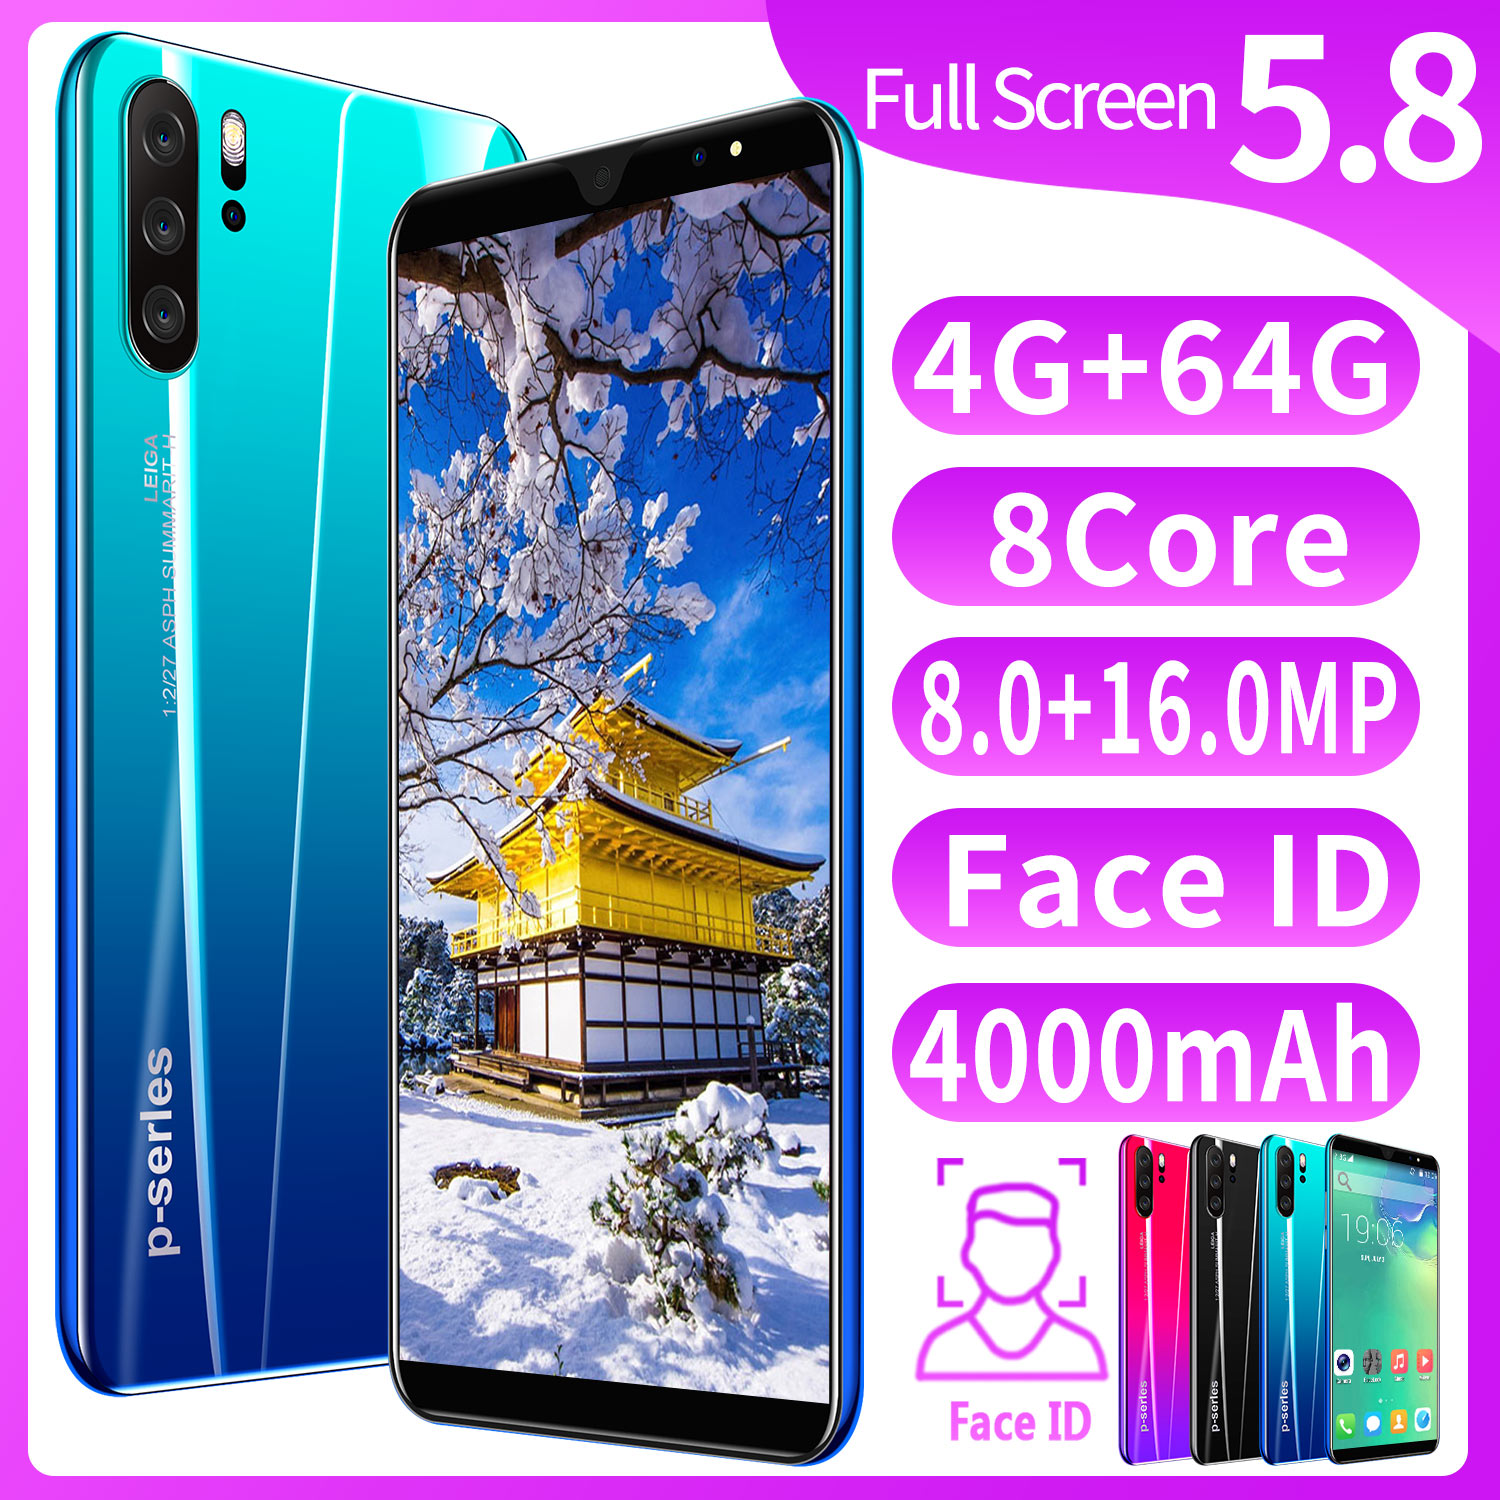 wholesale p33 cheap smart phone android mobile phone 5.8 inch Quad core Factory Outlet oem low price china mobile phon